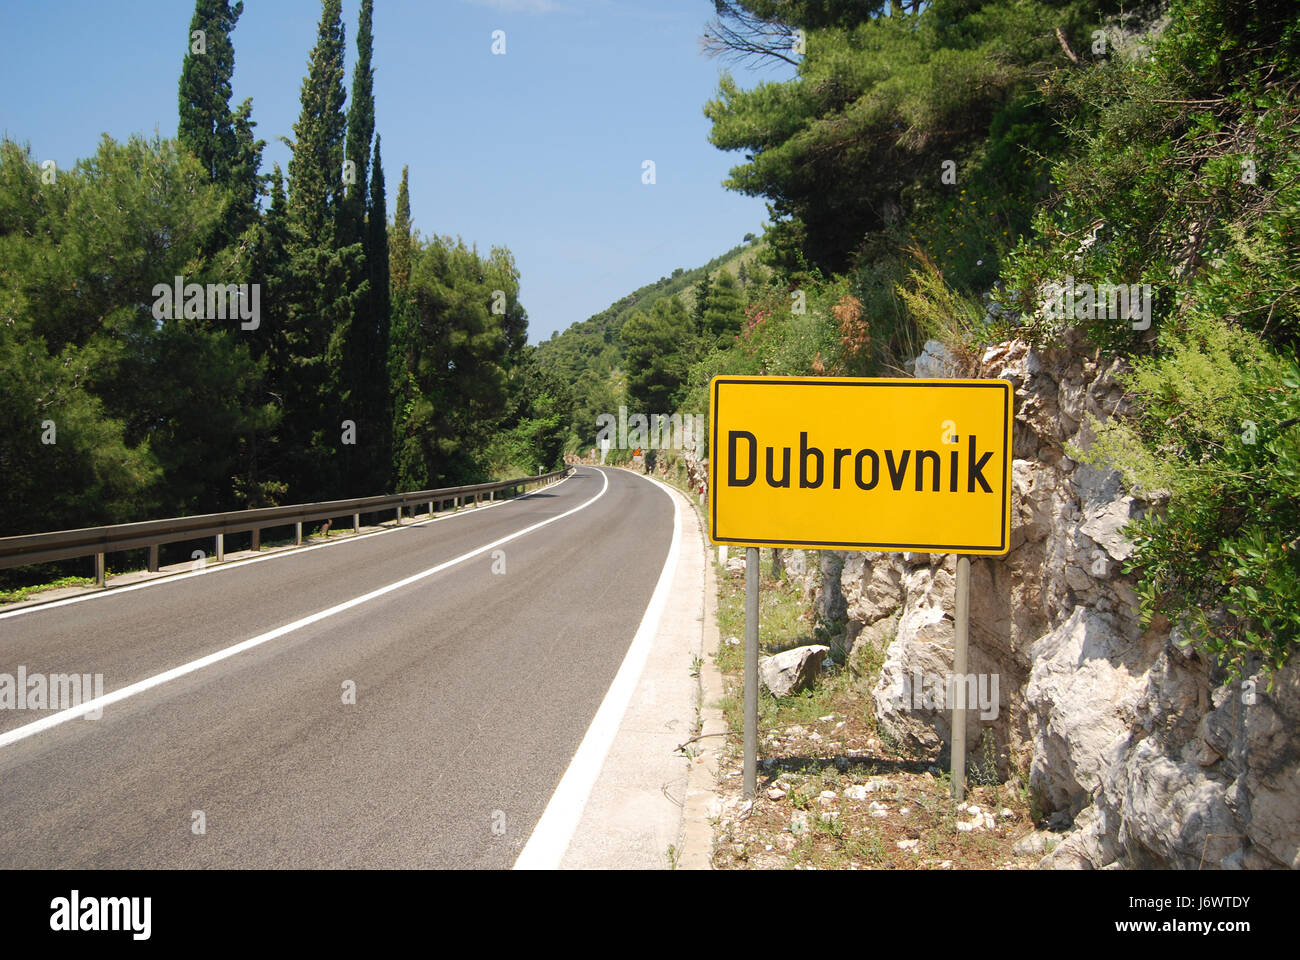 dalmatia jewish personals Travel like a local through dalmatia  jewish heritage tour  afternoon drive to marjan hill for a visit to the old jewish cemetery dating from 1537,.